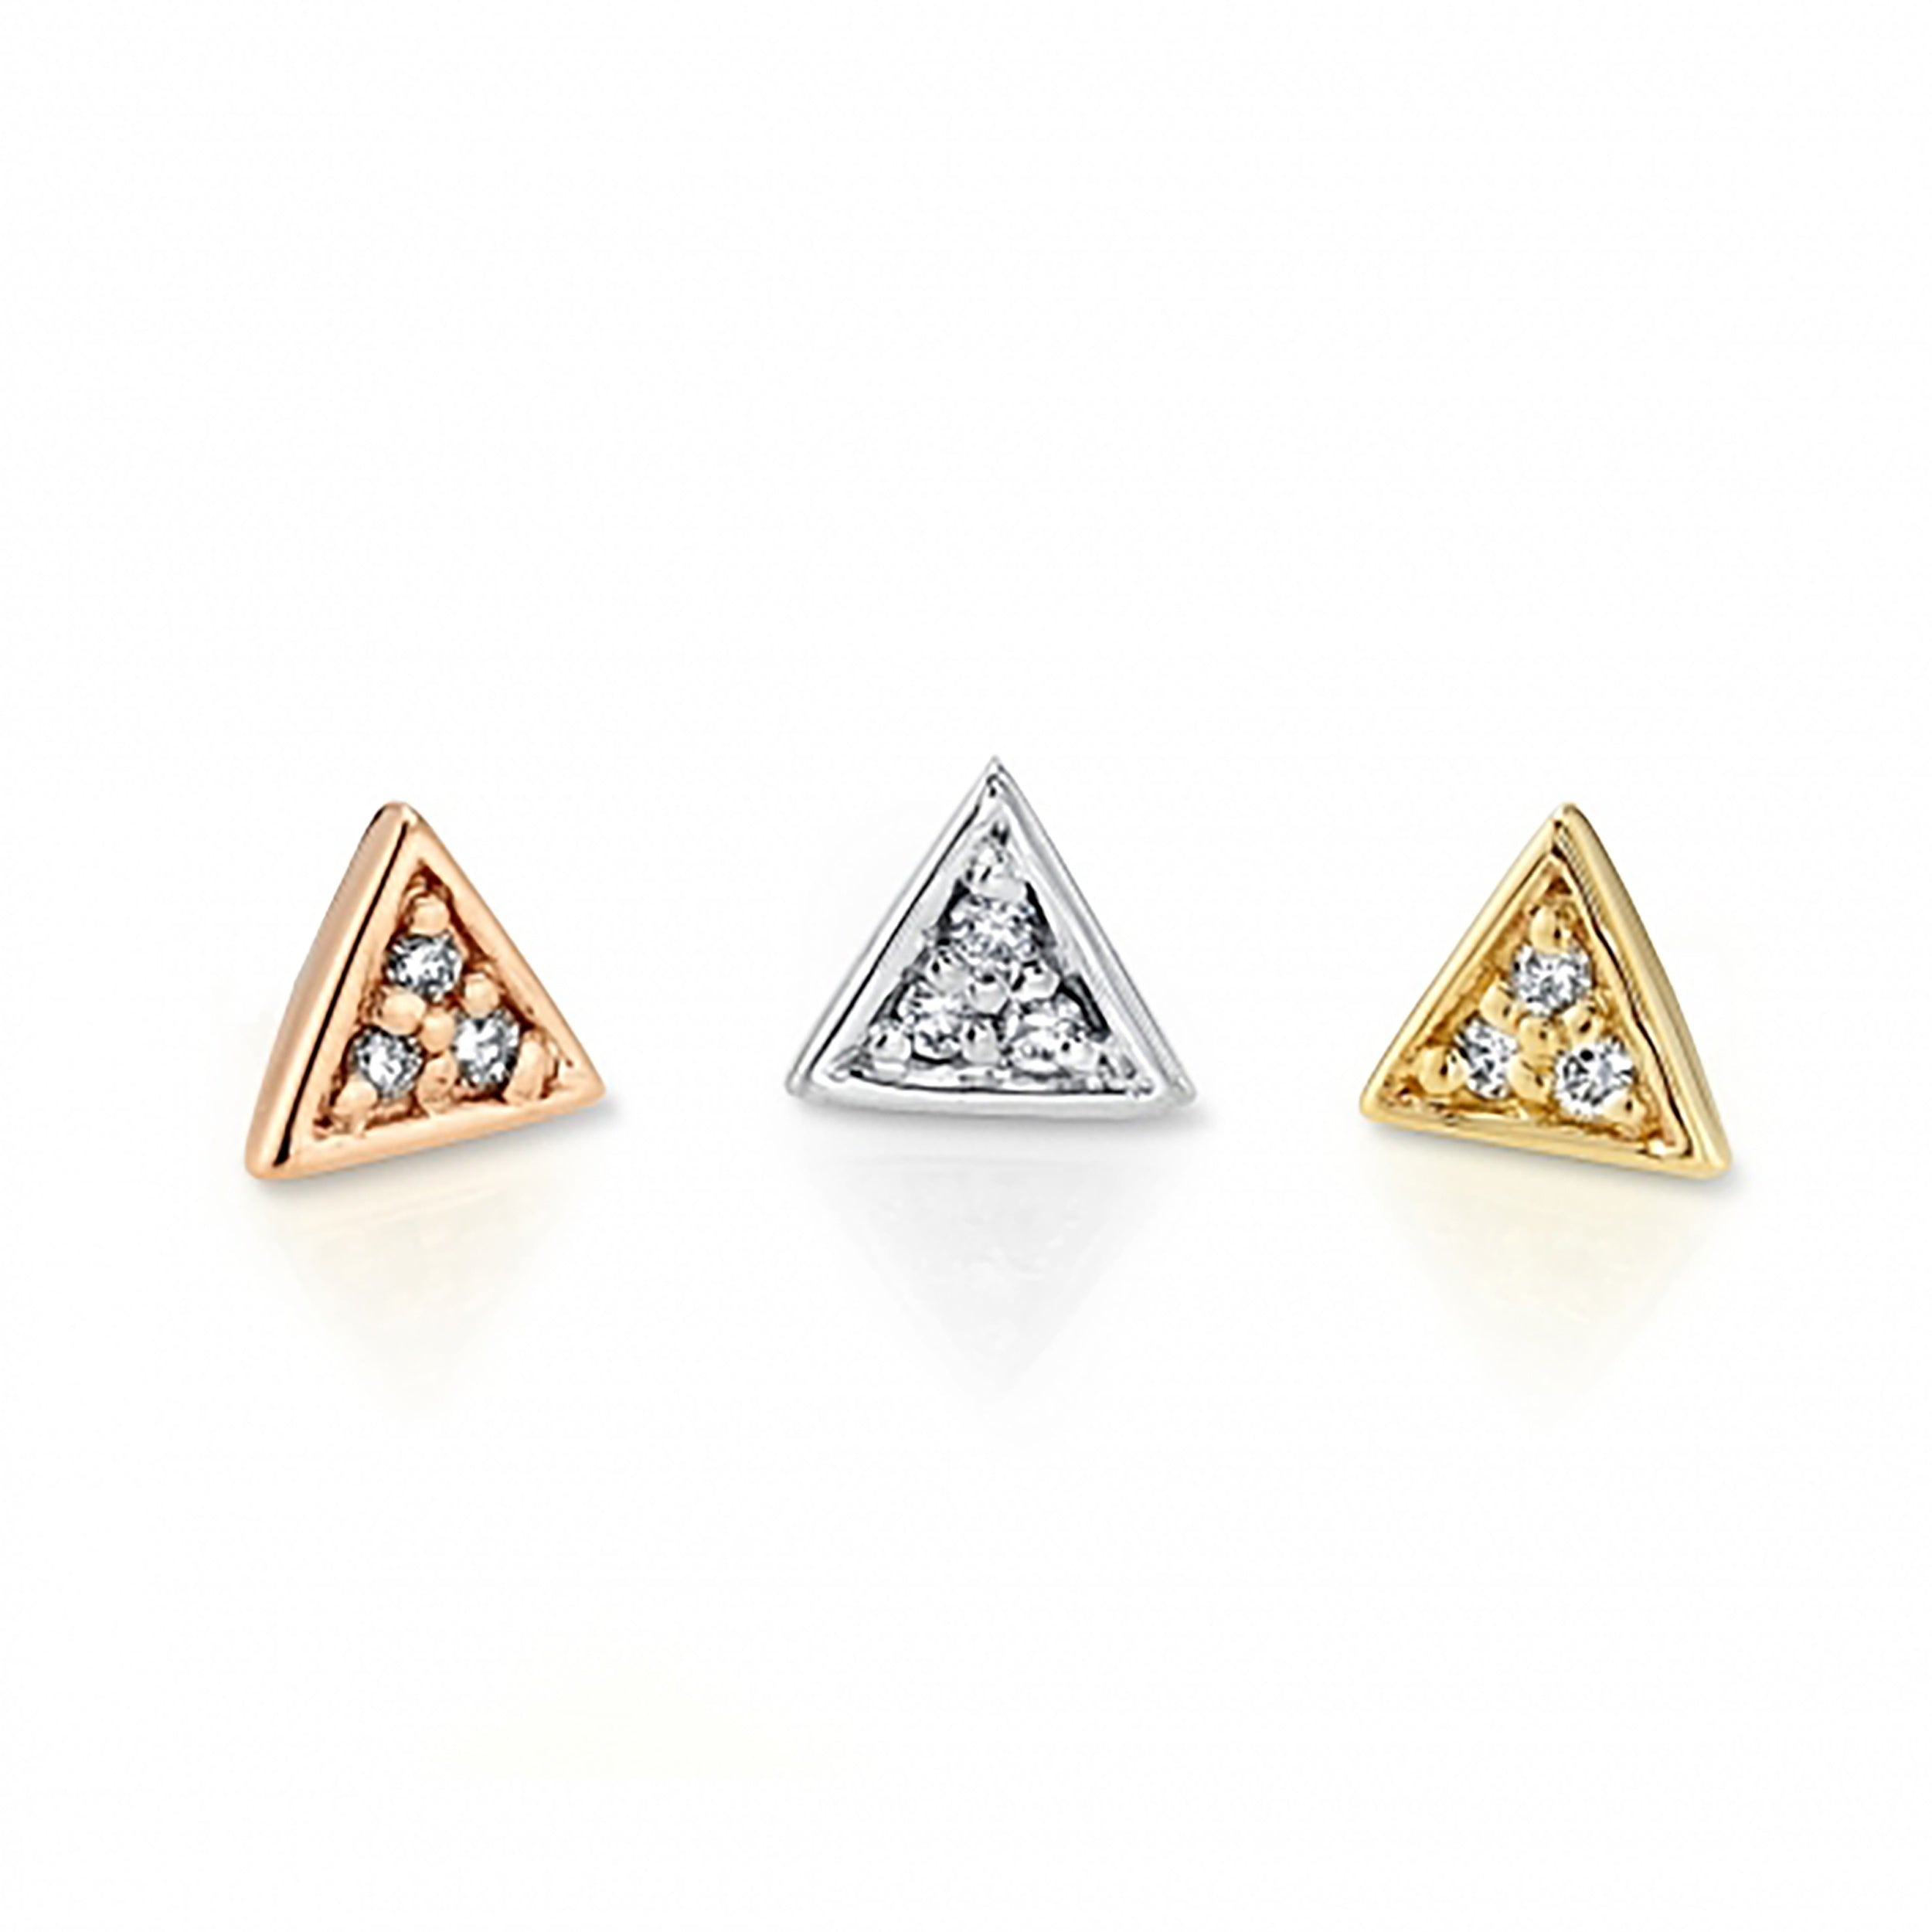 Micro Pave Triangle (PP BVLA)